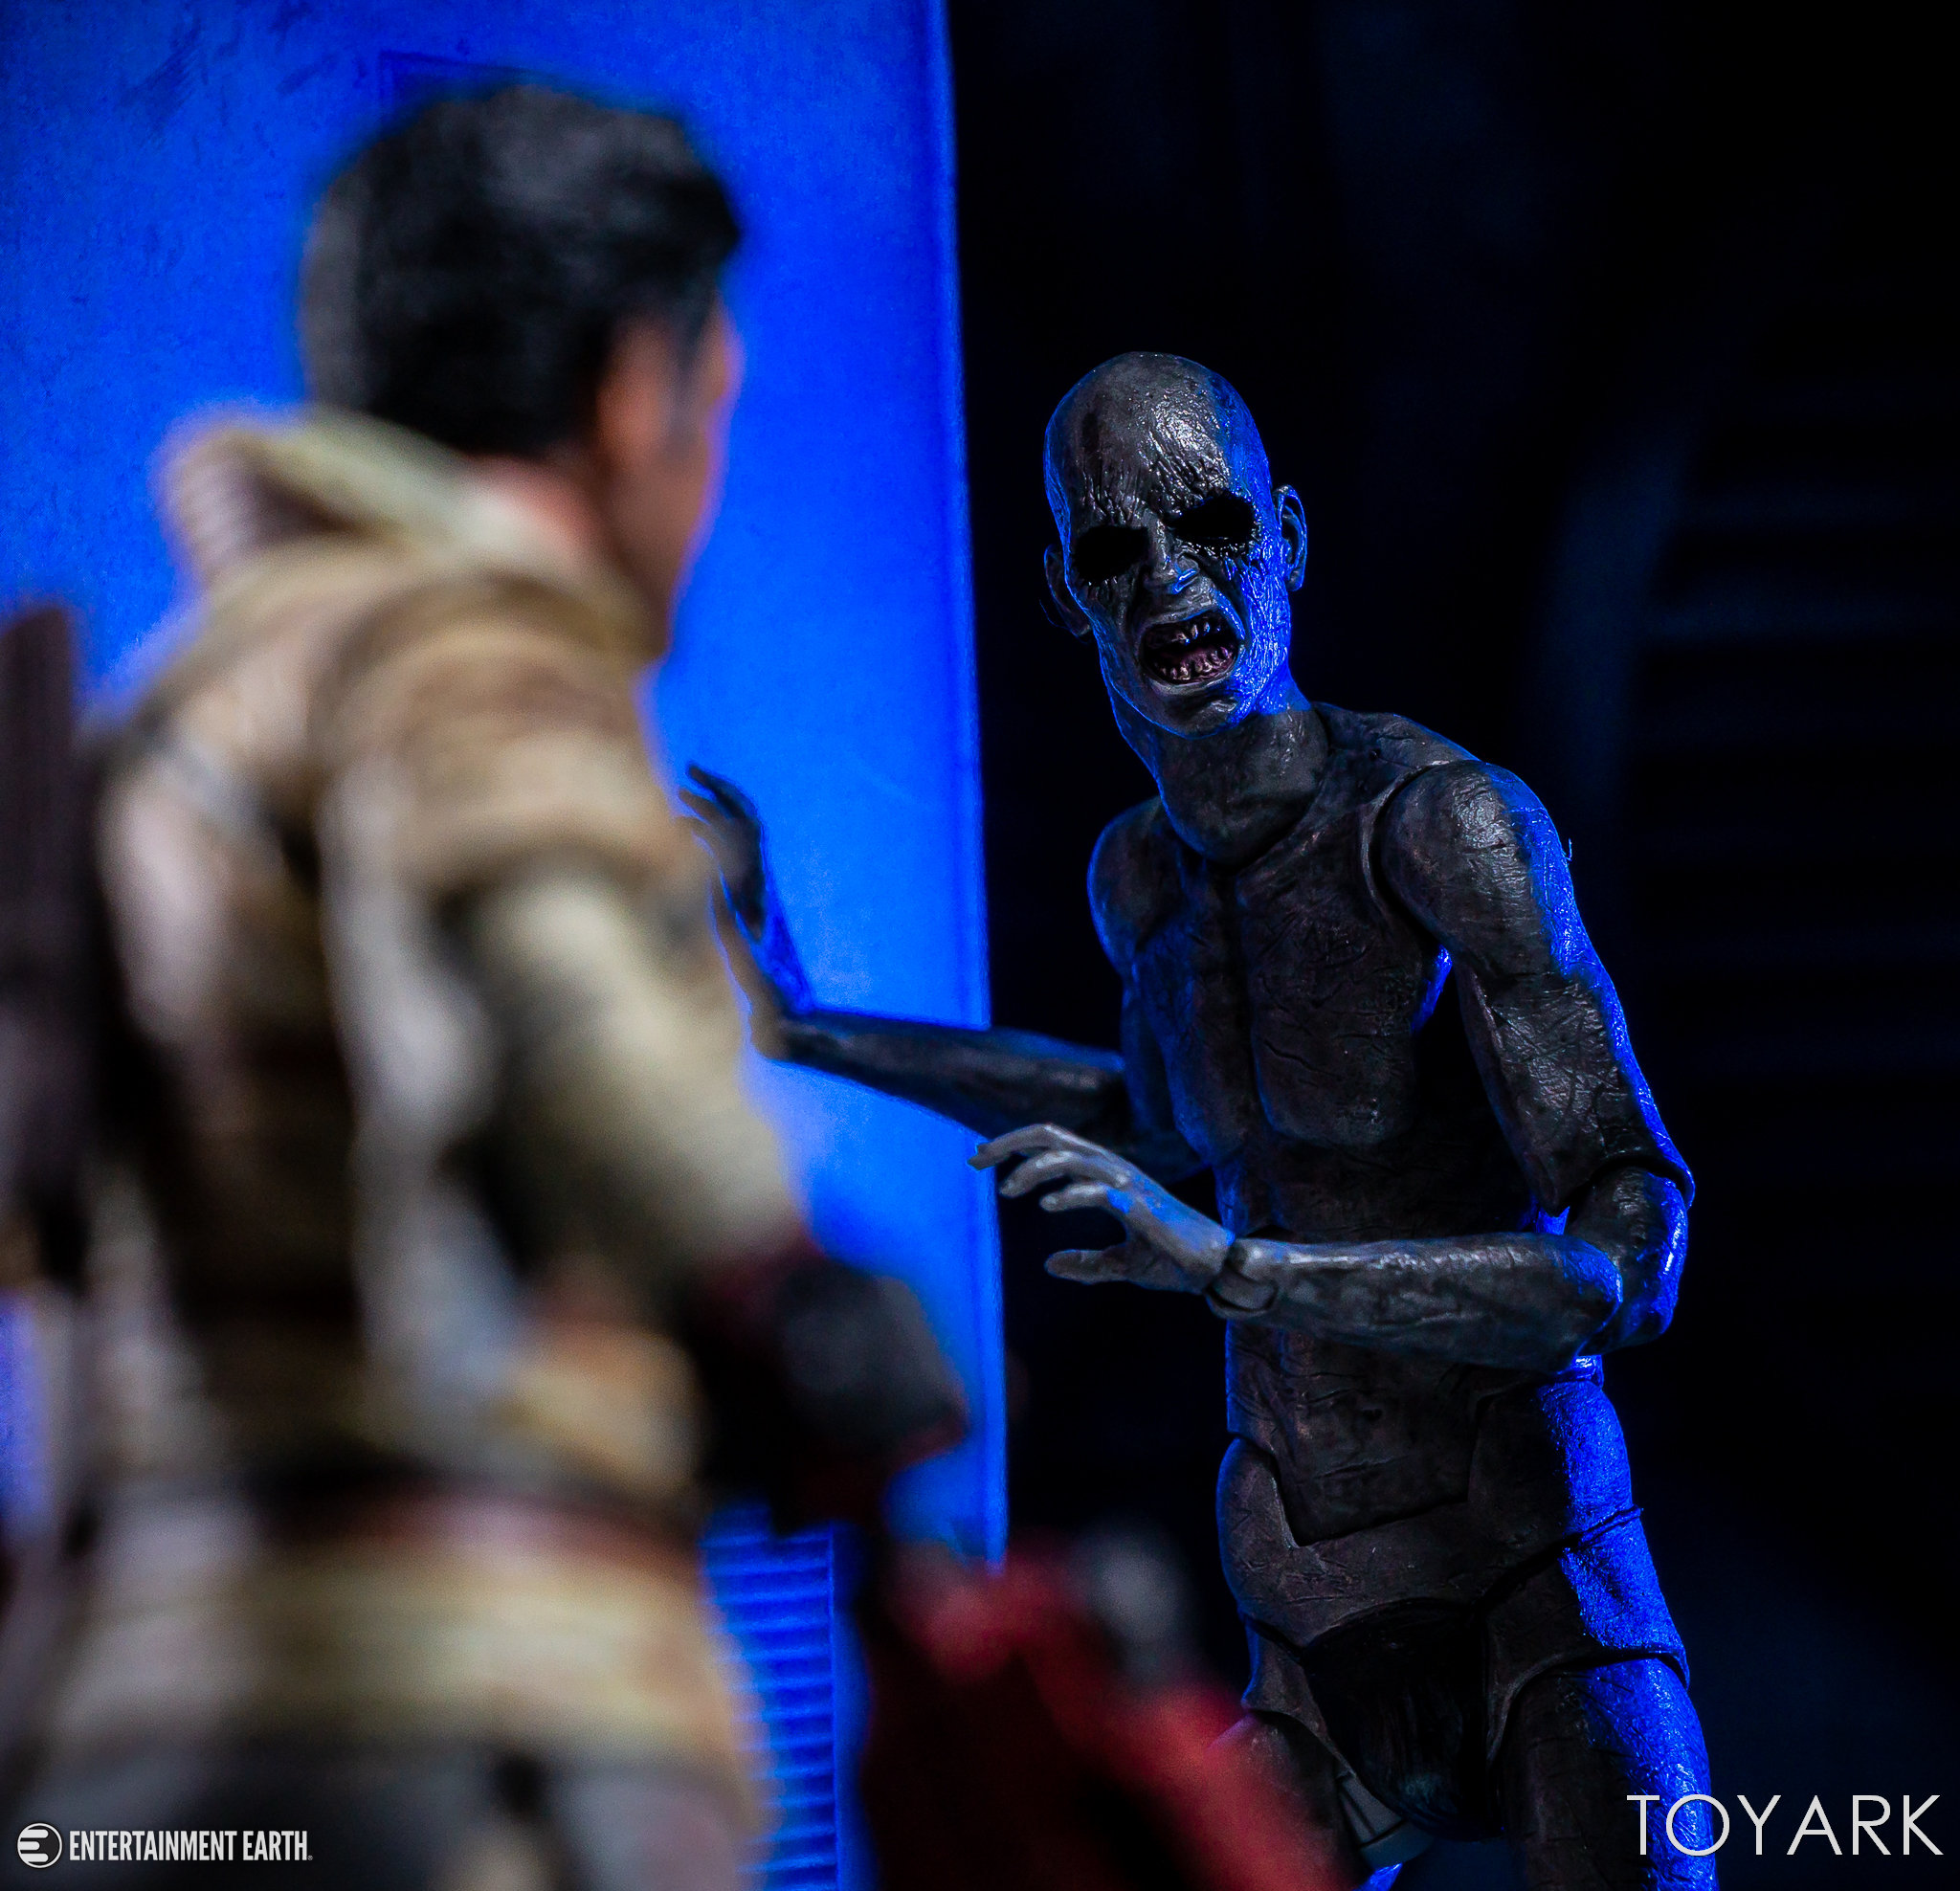 http://news.toyark.com/wp-content/uploads/sites/4/2018/04/Ash-vs-Evil-Dead-Series-2-NECA-057.jpg